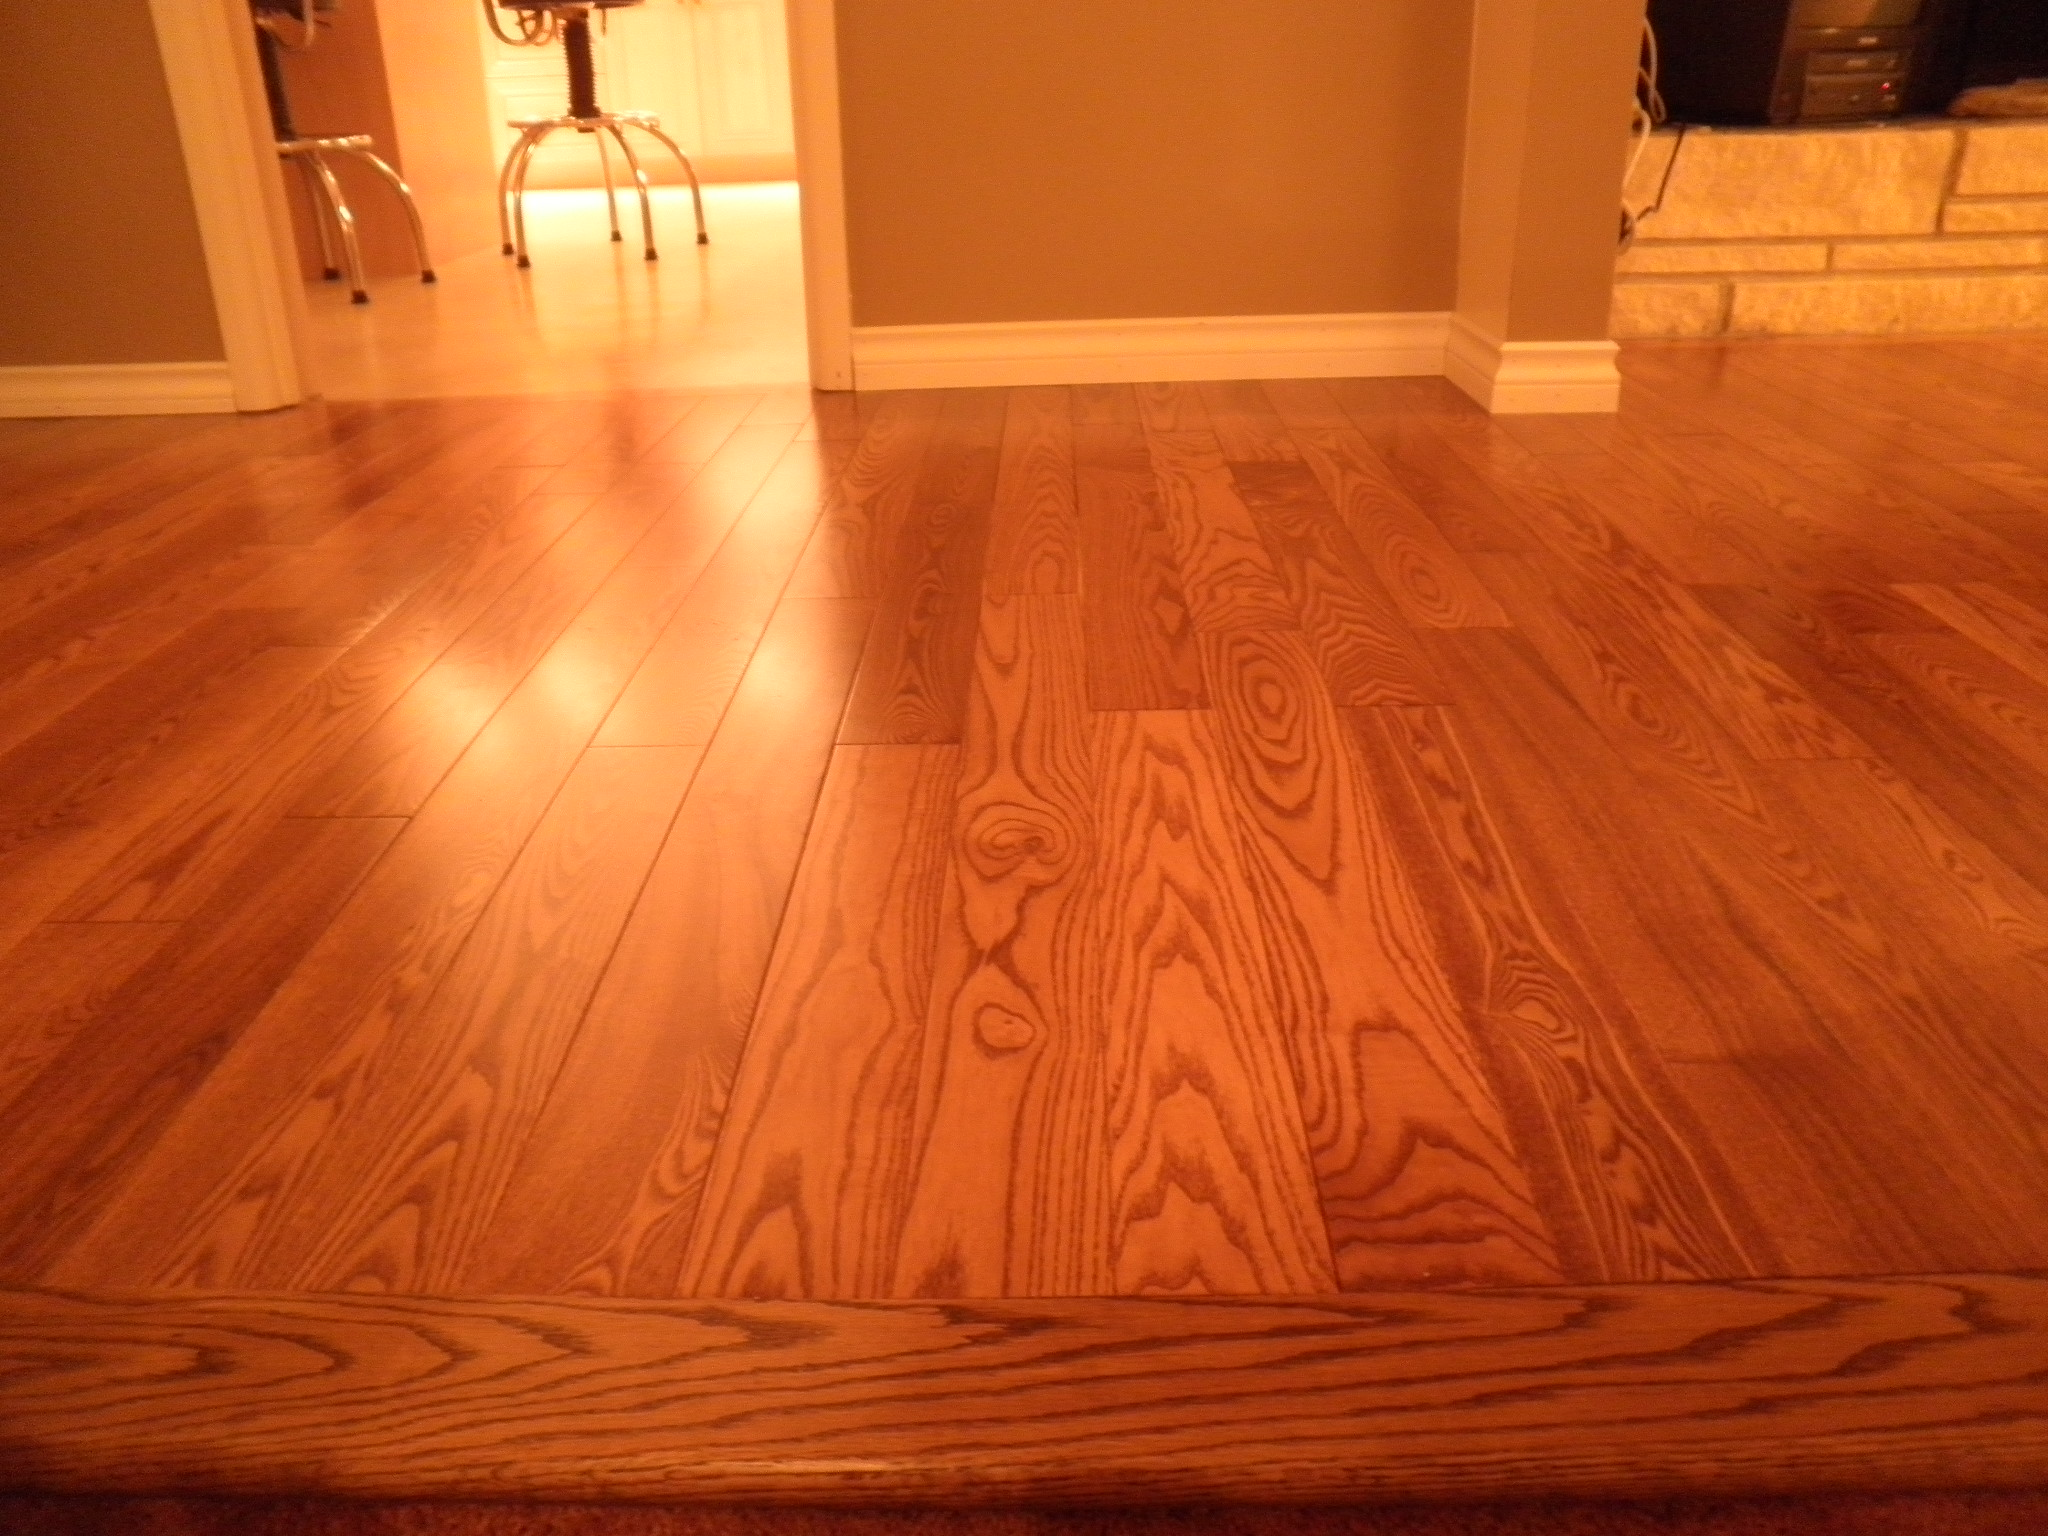 Hardwood flooring installation hardwood flooring Wood floor installer